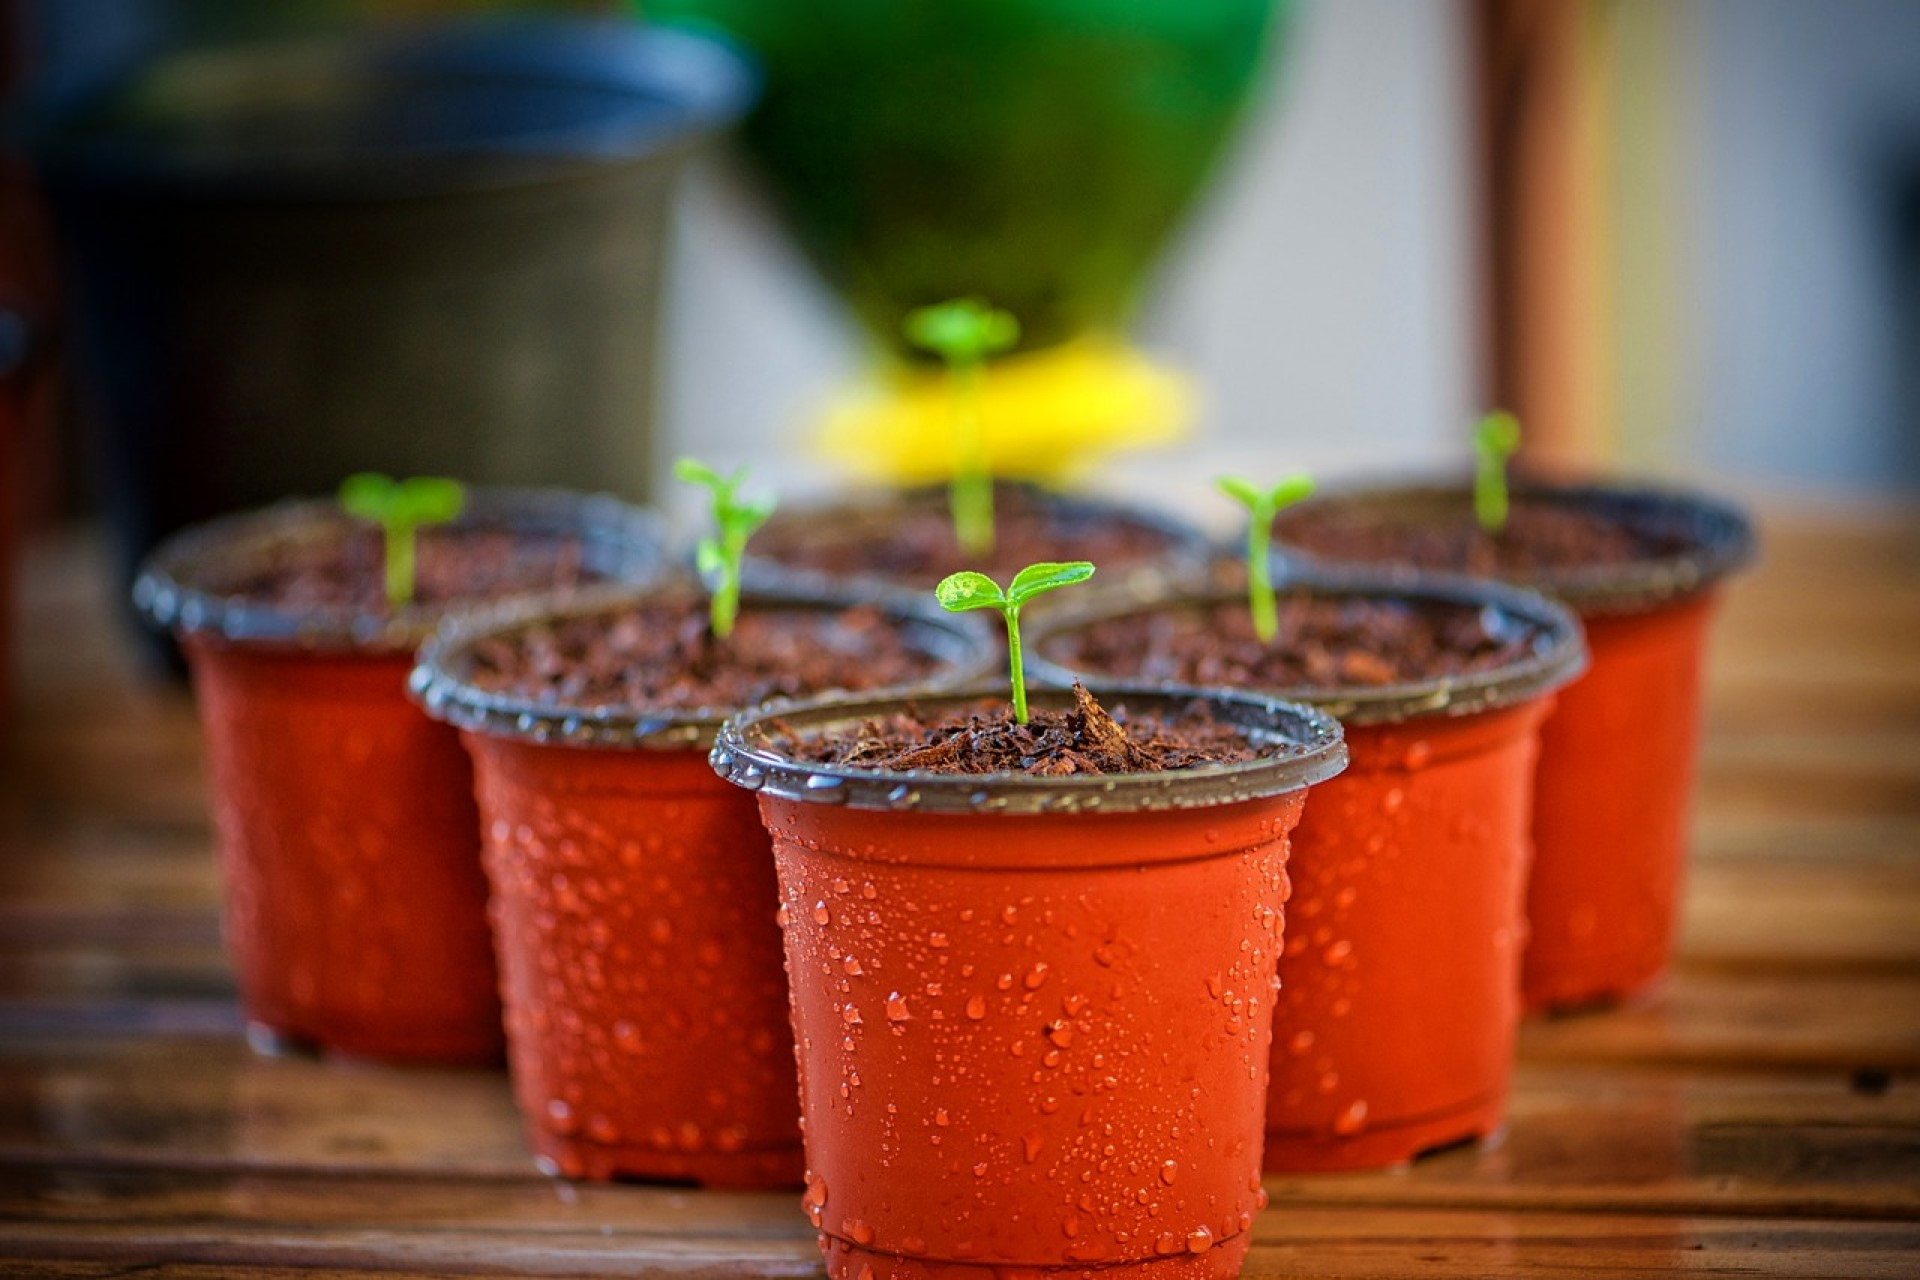 How to Make Biodegradable Pots Work for Green Roofing